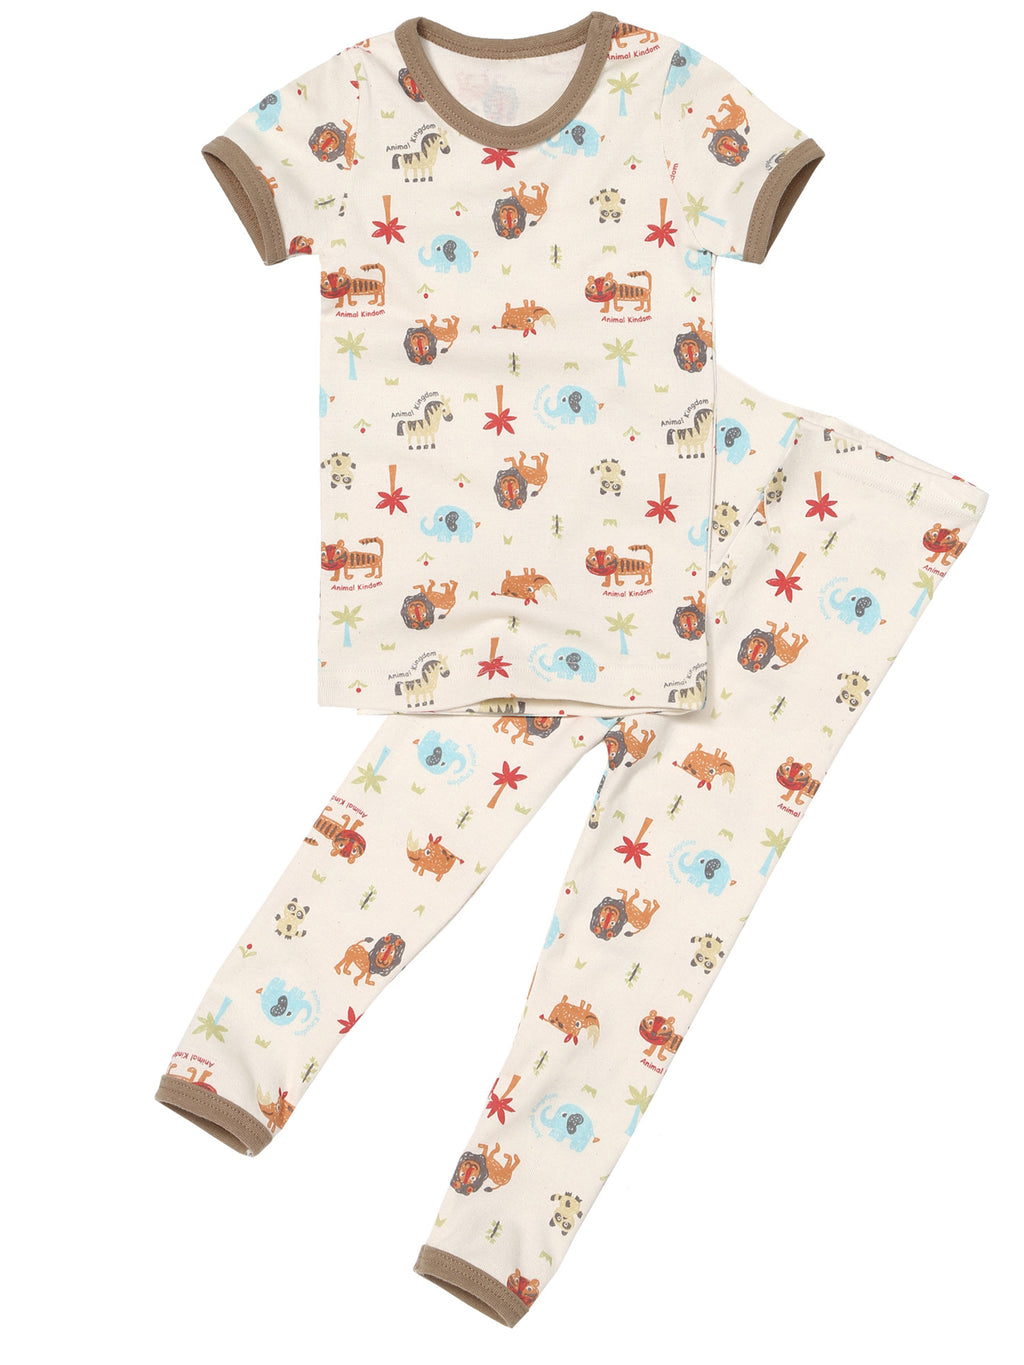 Toddler Two-Piece Short Sleeve and Long Bottom Pajama Set - HiOrganic